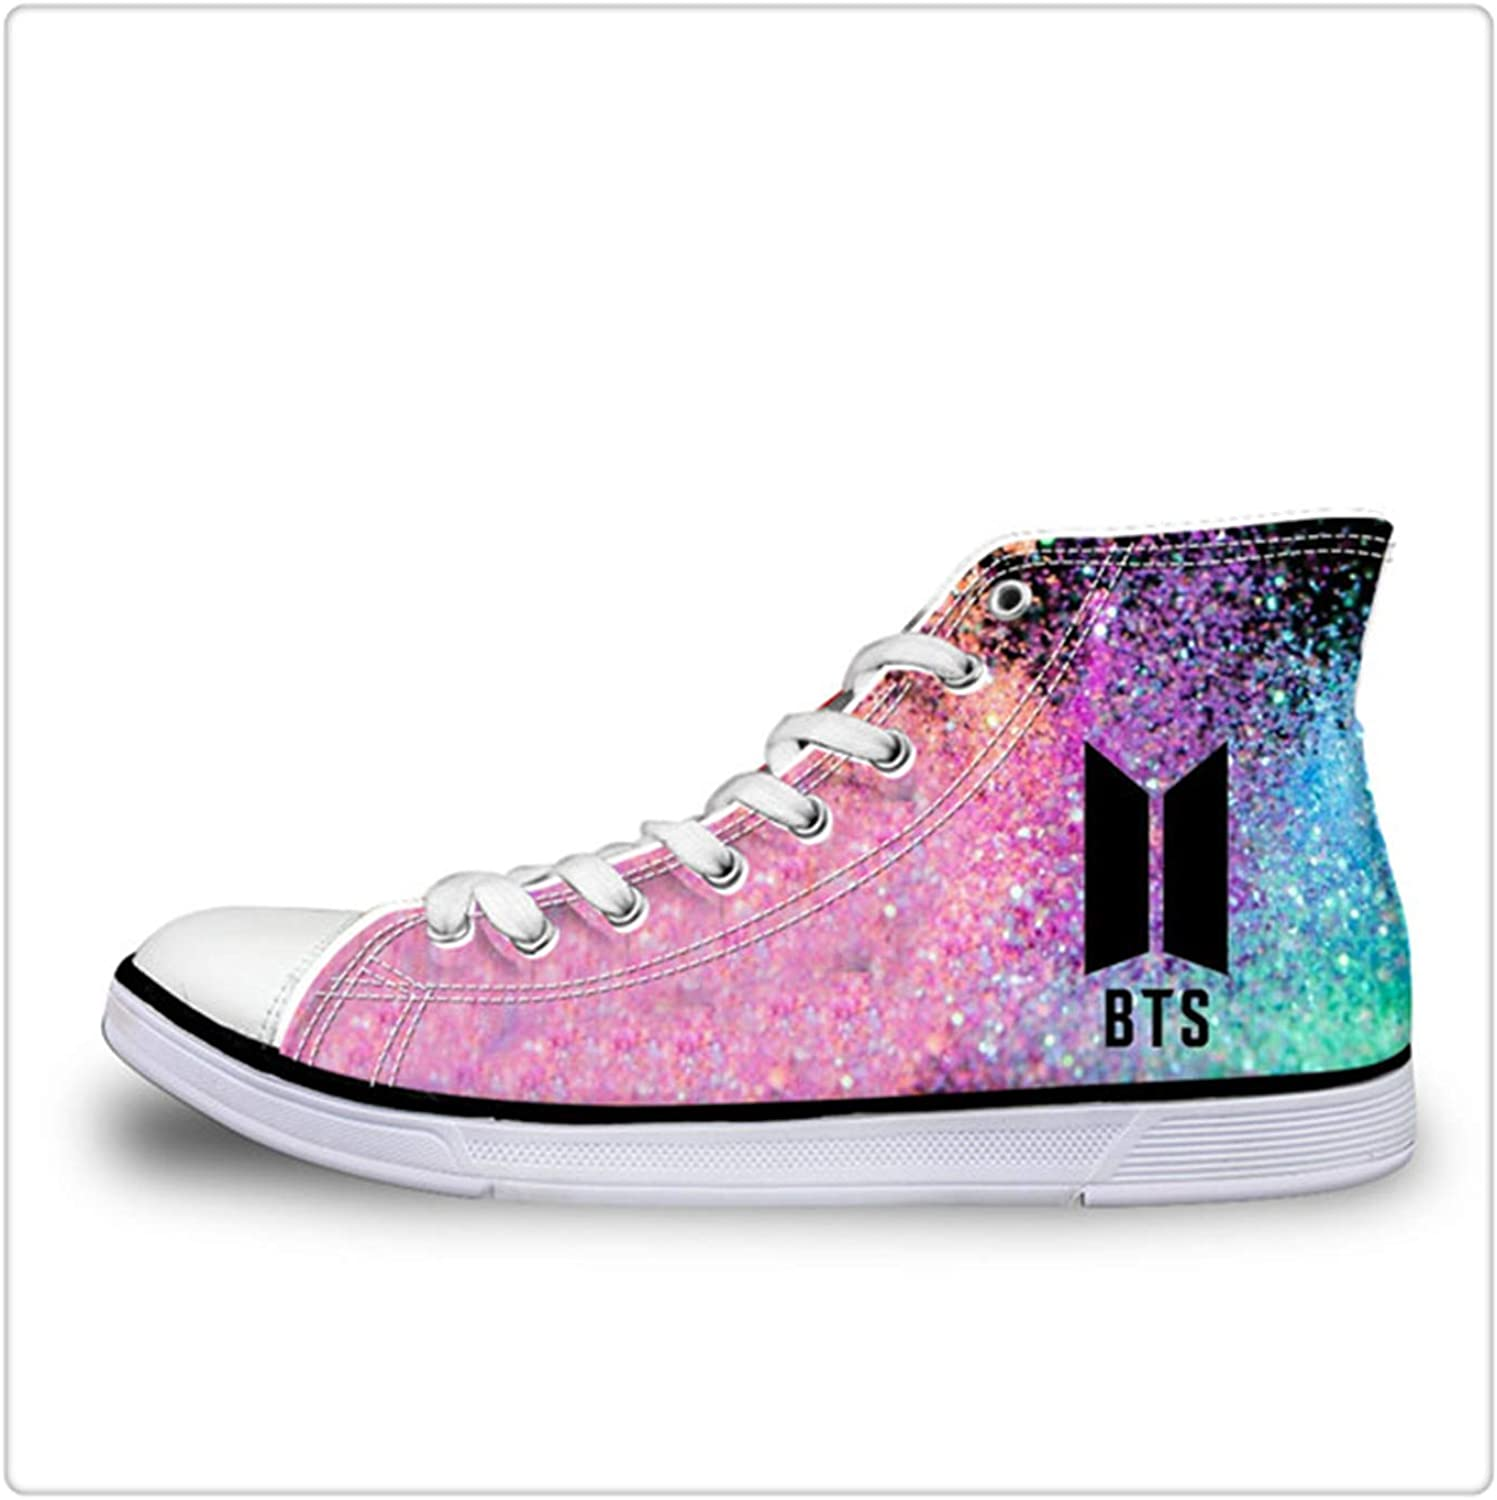 SSLOPY& Women Hot BTS Print High Top Women Vulcanize shoes Classic Lace Up